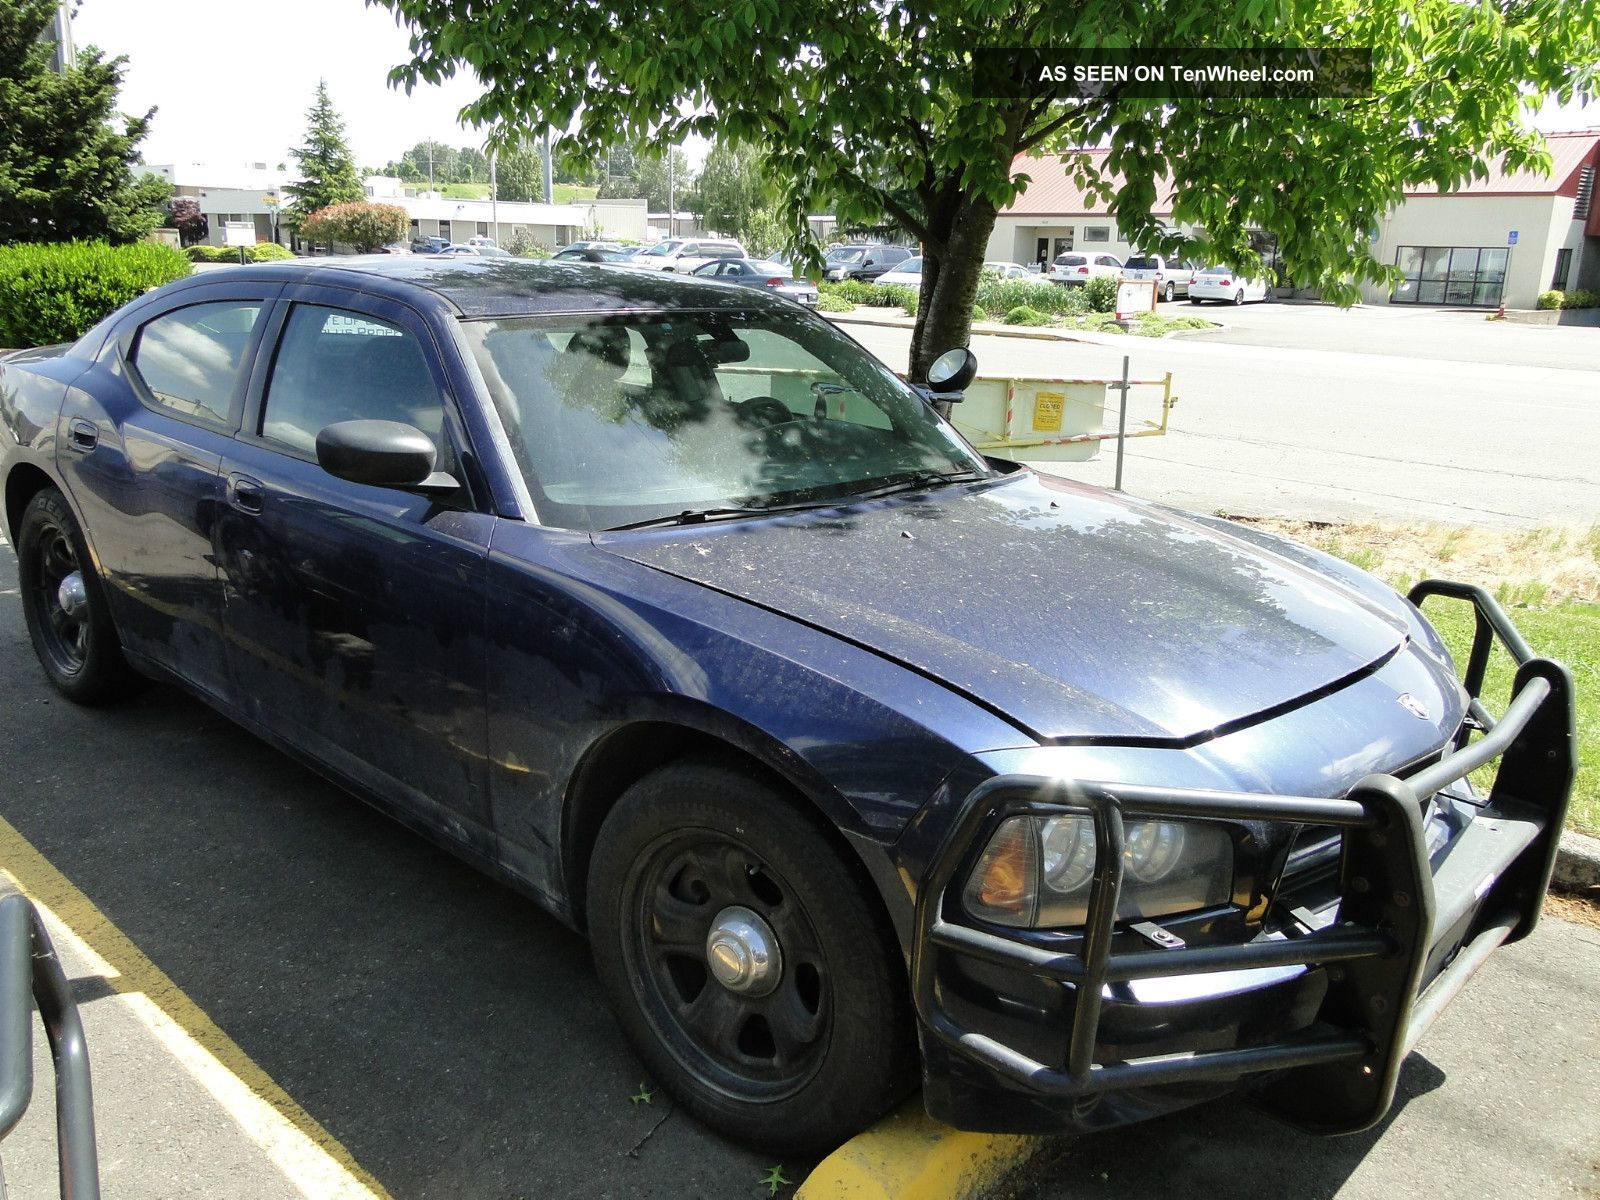 2006 Dodge Charger - Rwd 4 Door Sedan – Ex Police Car